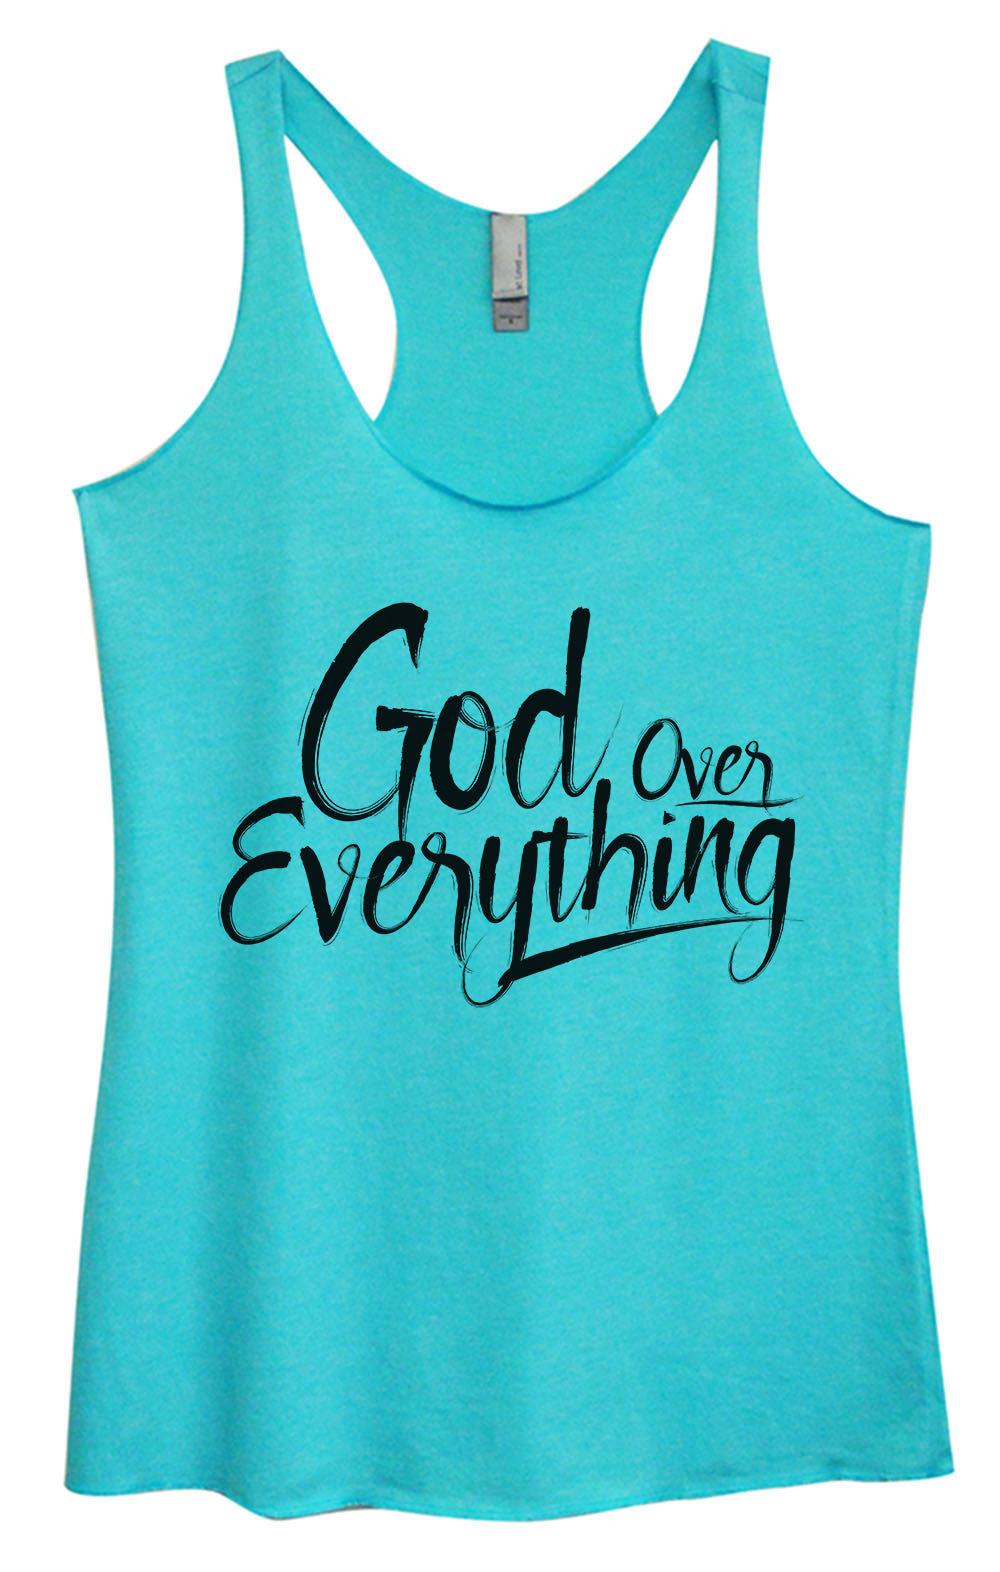 Womens Fashion Triblend Tank Top - God Everything Over - Tri-1588 - Funny Shirts Tank Tops Burnouts and Triblends  - 1